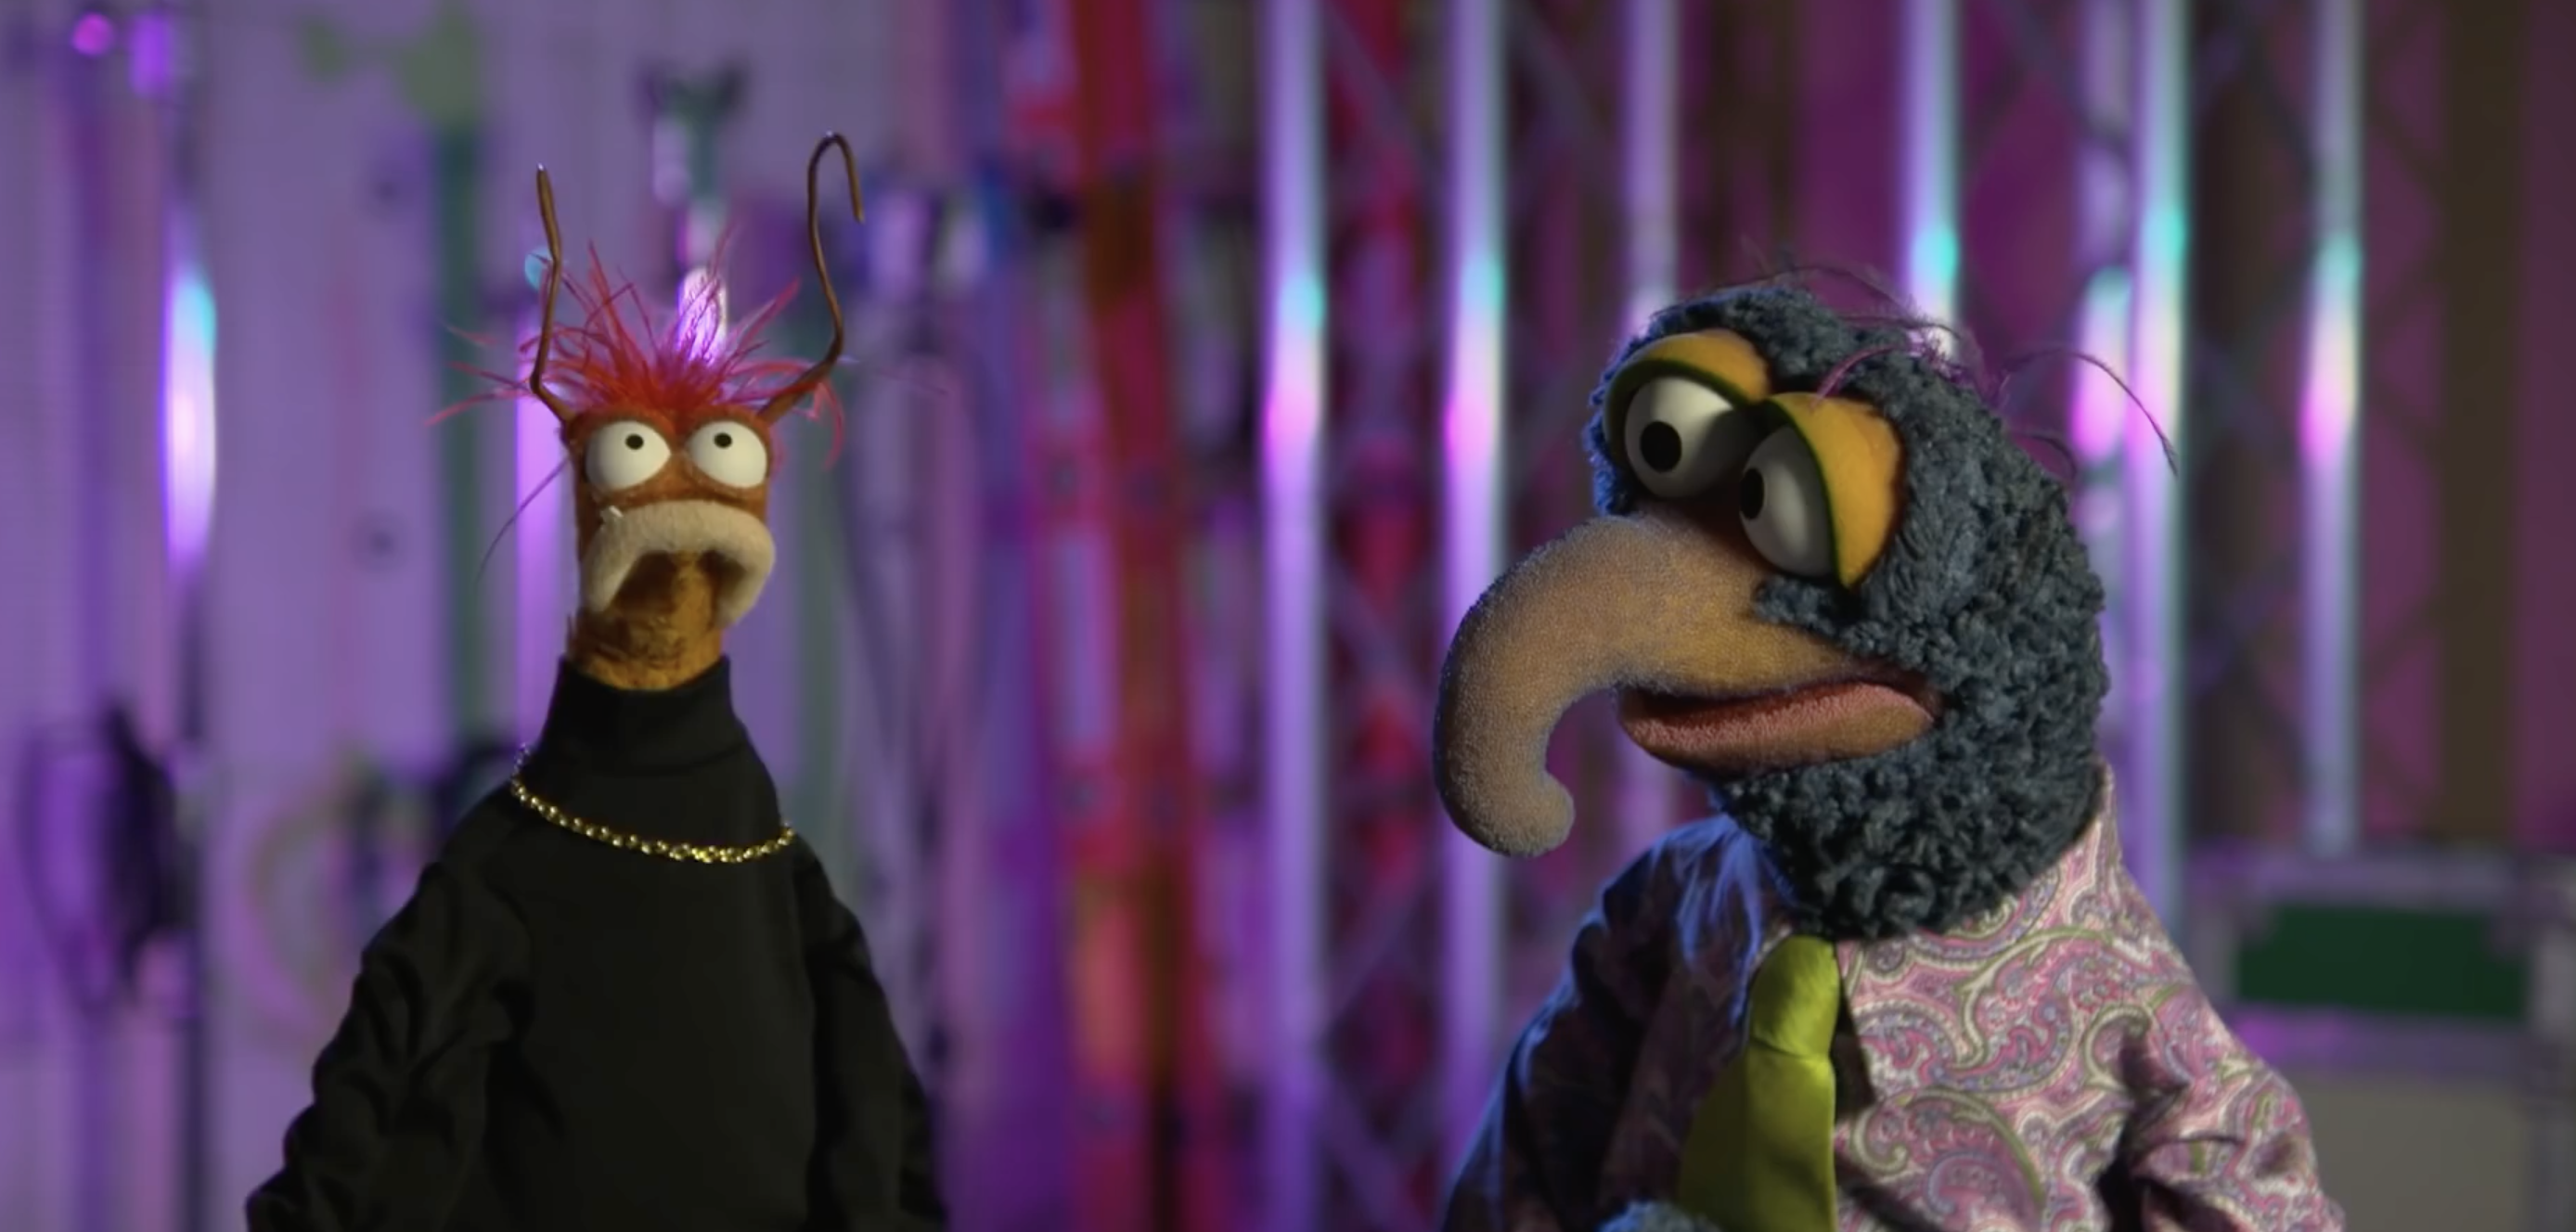 gonzo and pepe the king prawn talking